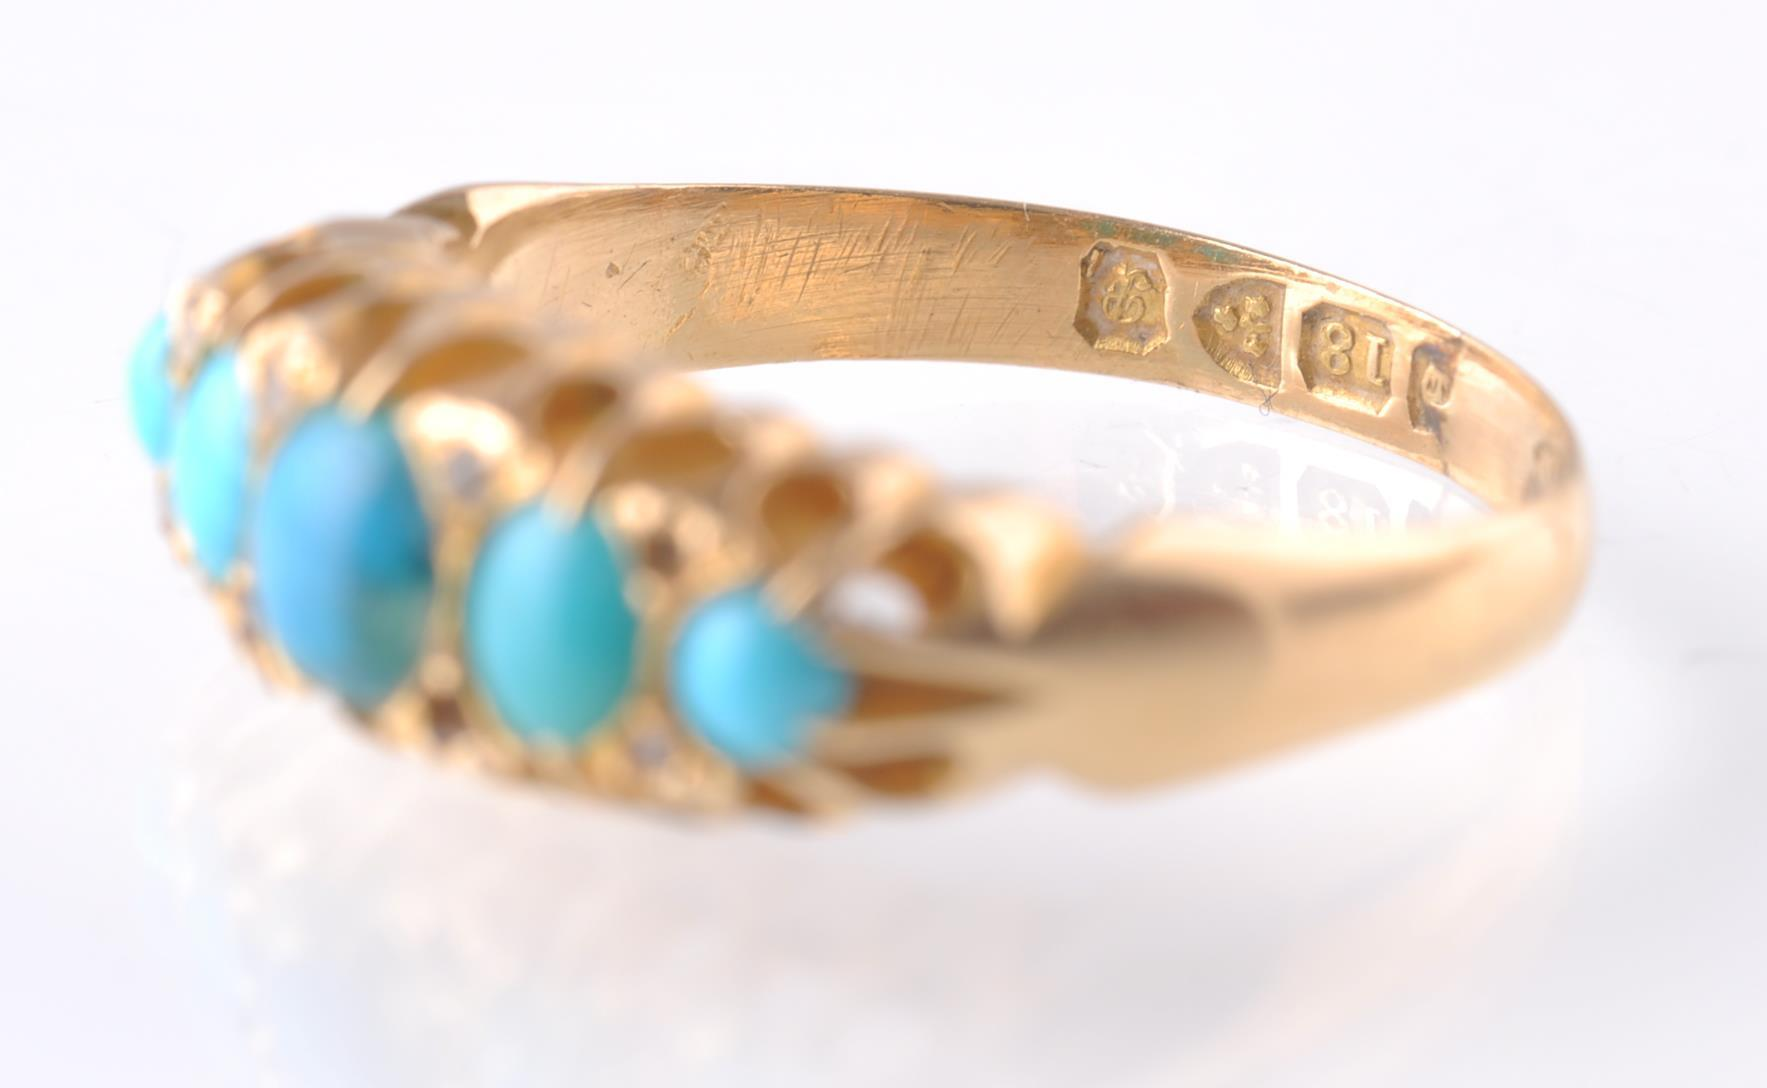 An 18CT GOLD & TURQUOISE GYPSY RING - 1915 - Image 4 of 4